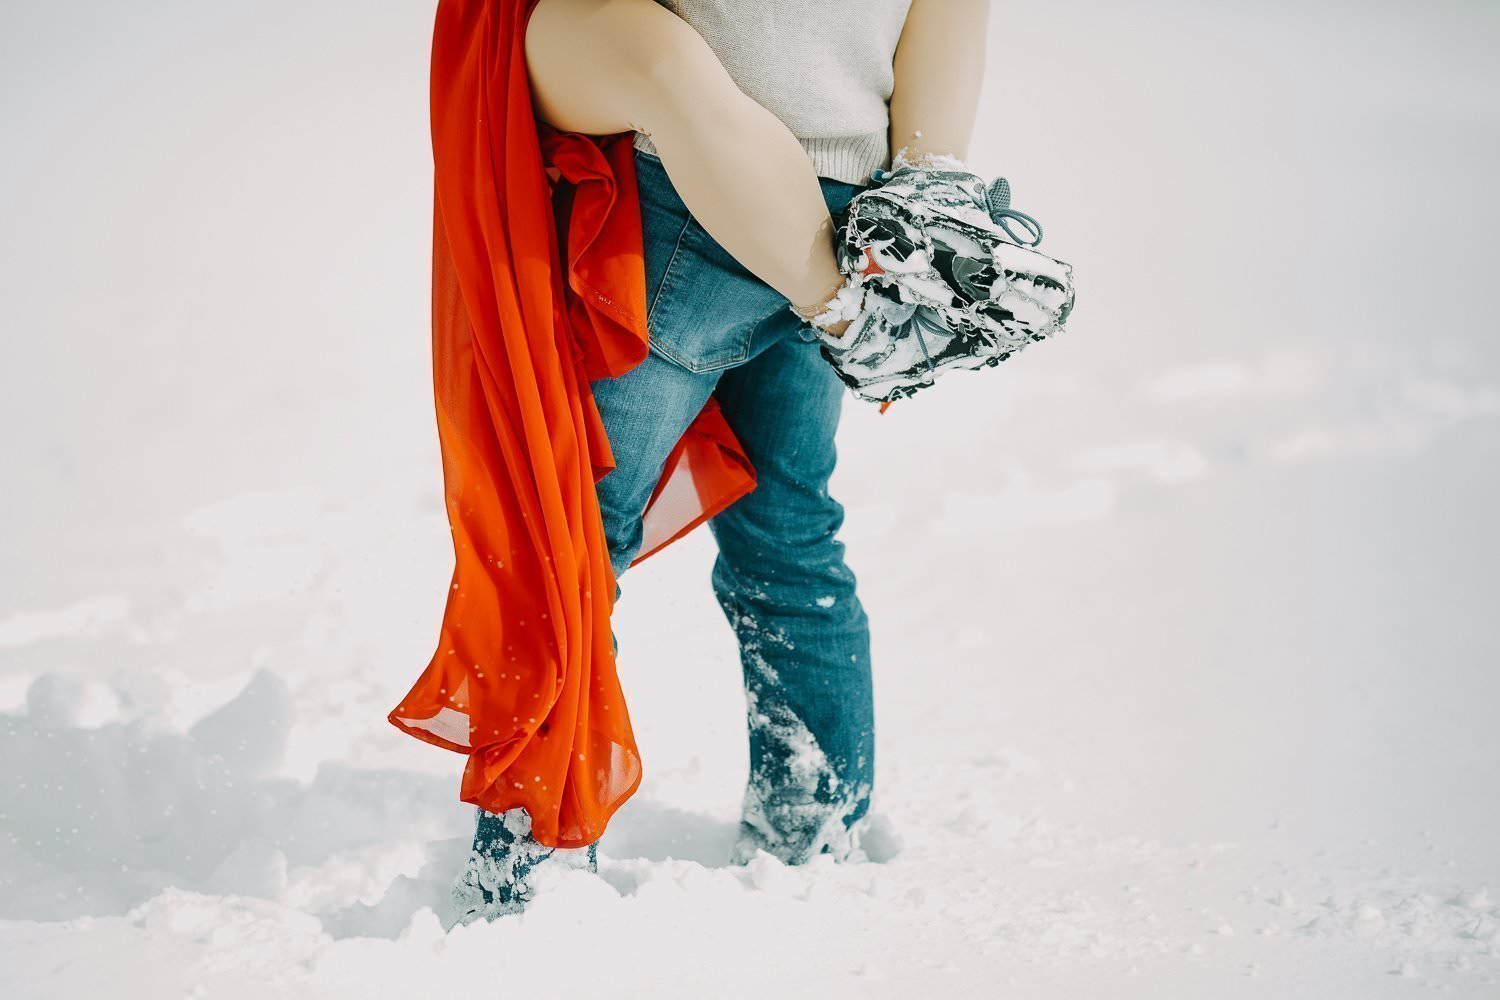 LOVELAND PASS ENGAGEMENT PHOTOGRAPHER|SUMMIT COUNTY ADVENTURES|SOLEIL + MARK|COLORADO WINTER ENGAGEMENT|ADVENTURE HIKING ENGAGEMENTS PHOTOGRAPHER | CREATIVE WEDDING PHOTOGRAPHY FOR ADVENTUROUS COUPLES| COLORADO MOUNTAIN WEDDING PHOTOGRAPHER